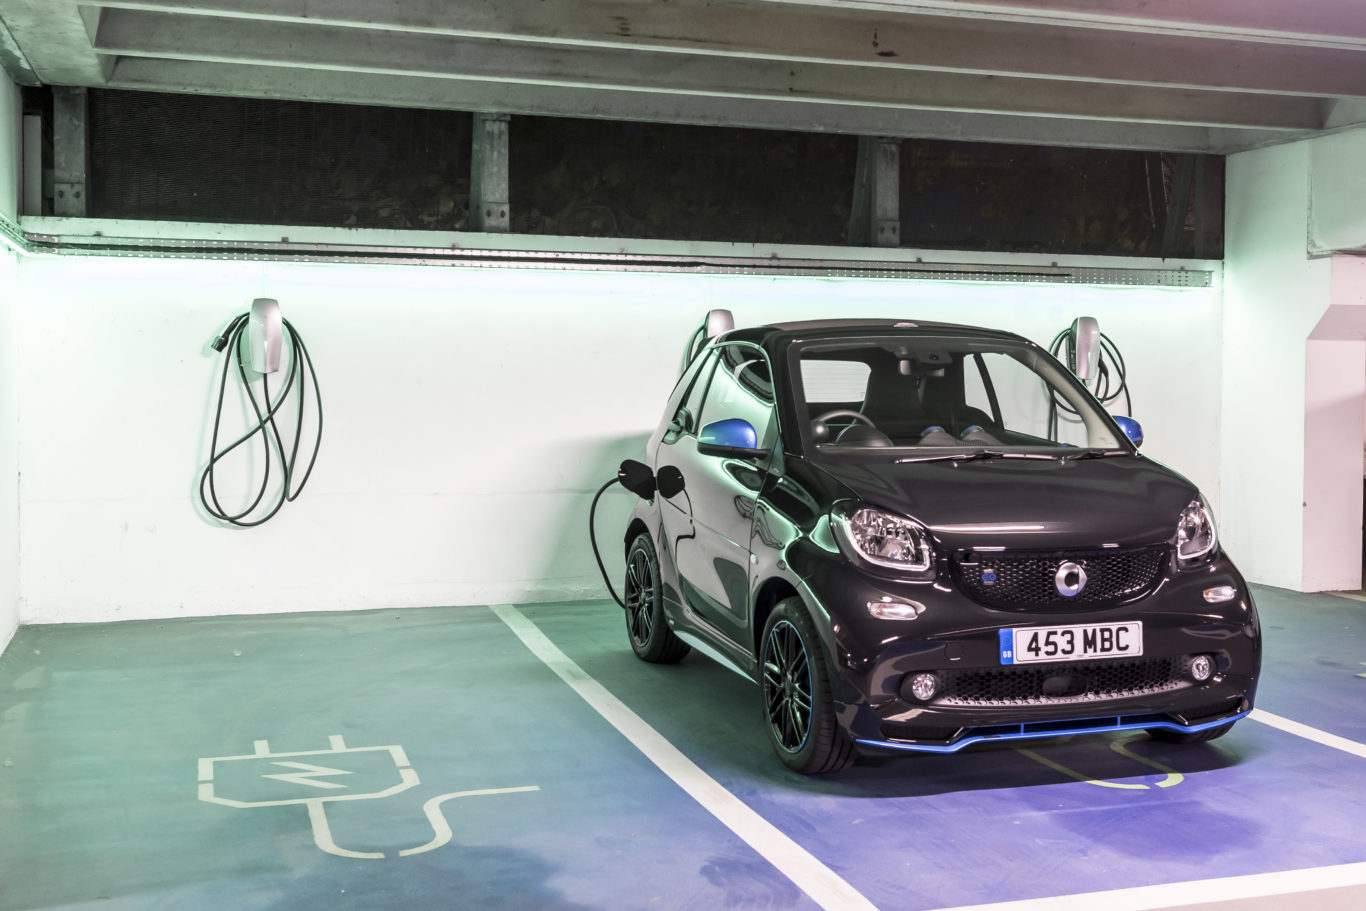 Charging the Smart ForTwo couldn't be simpler